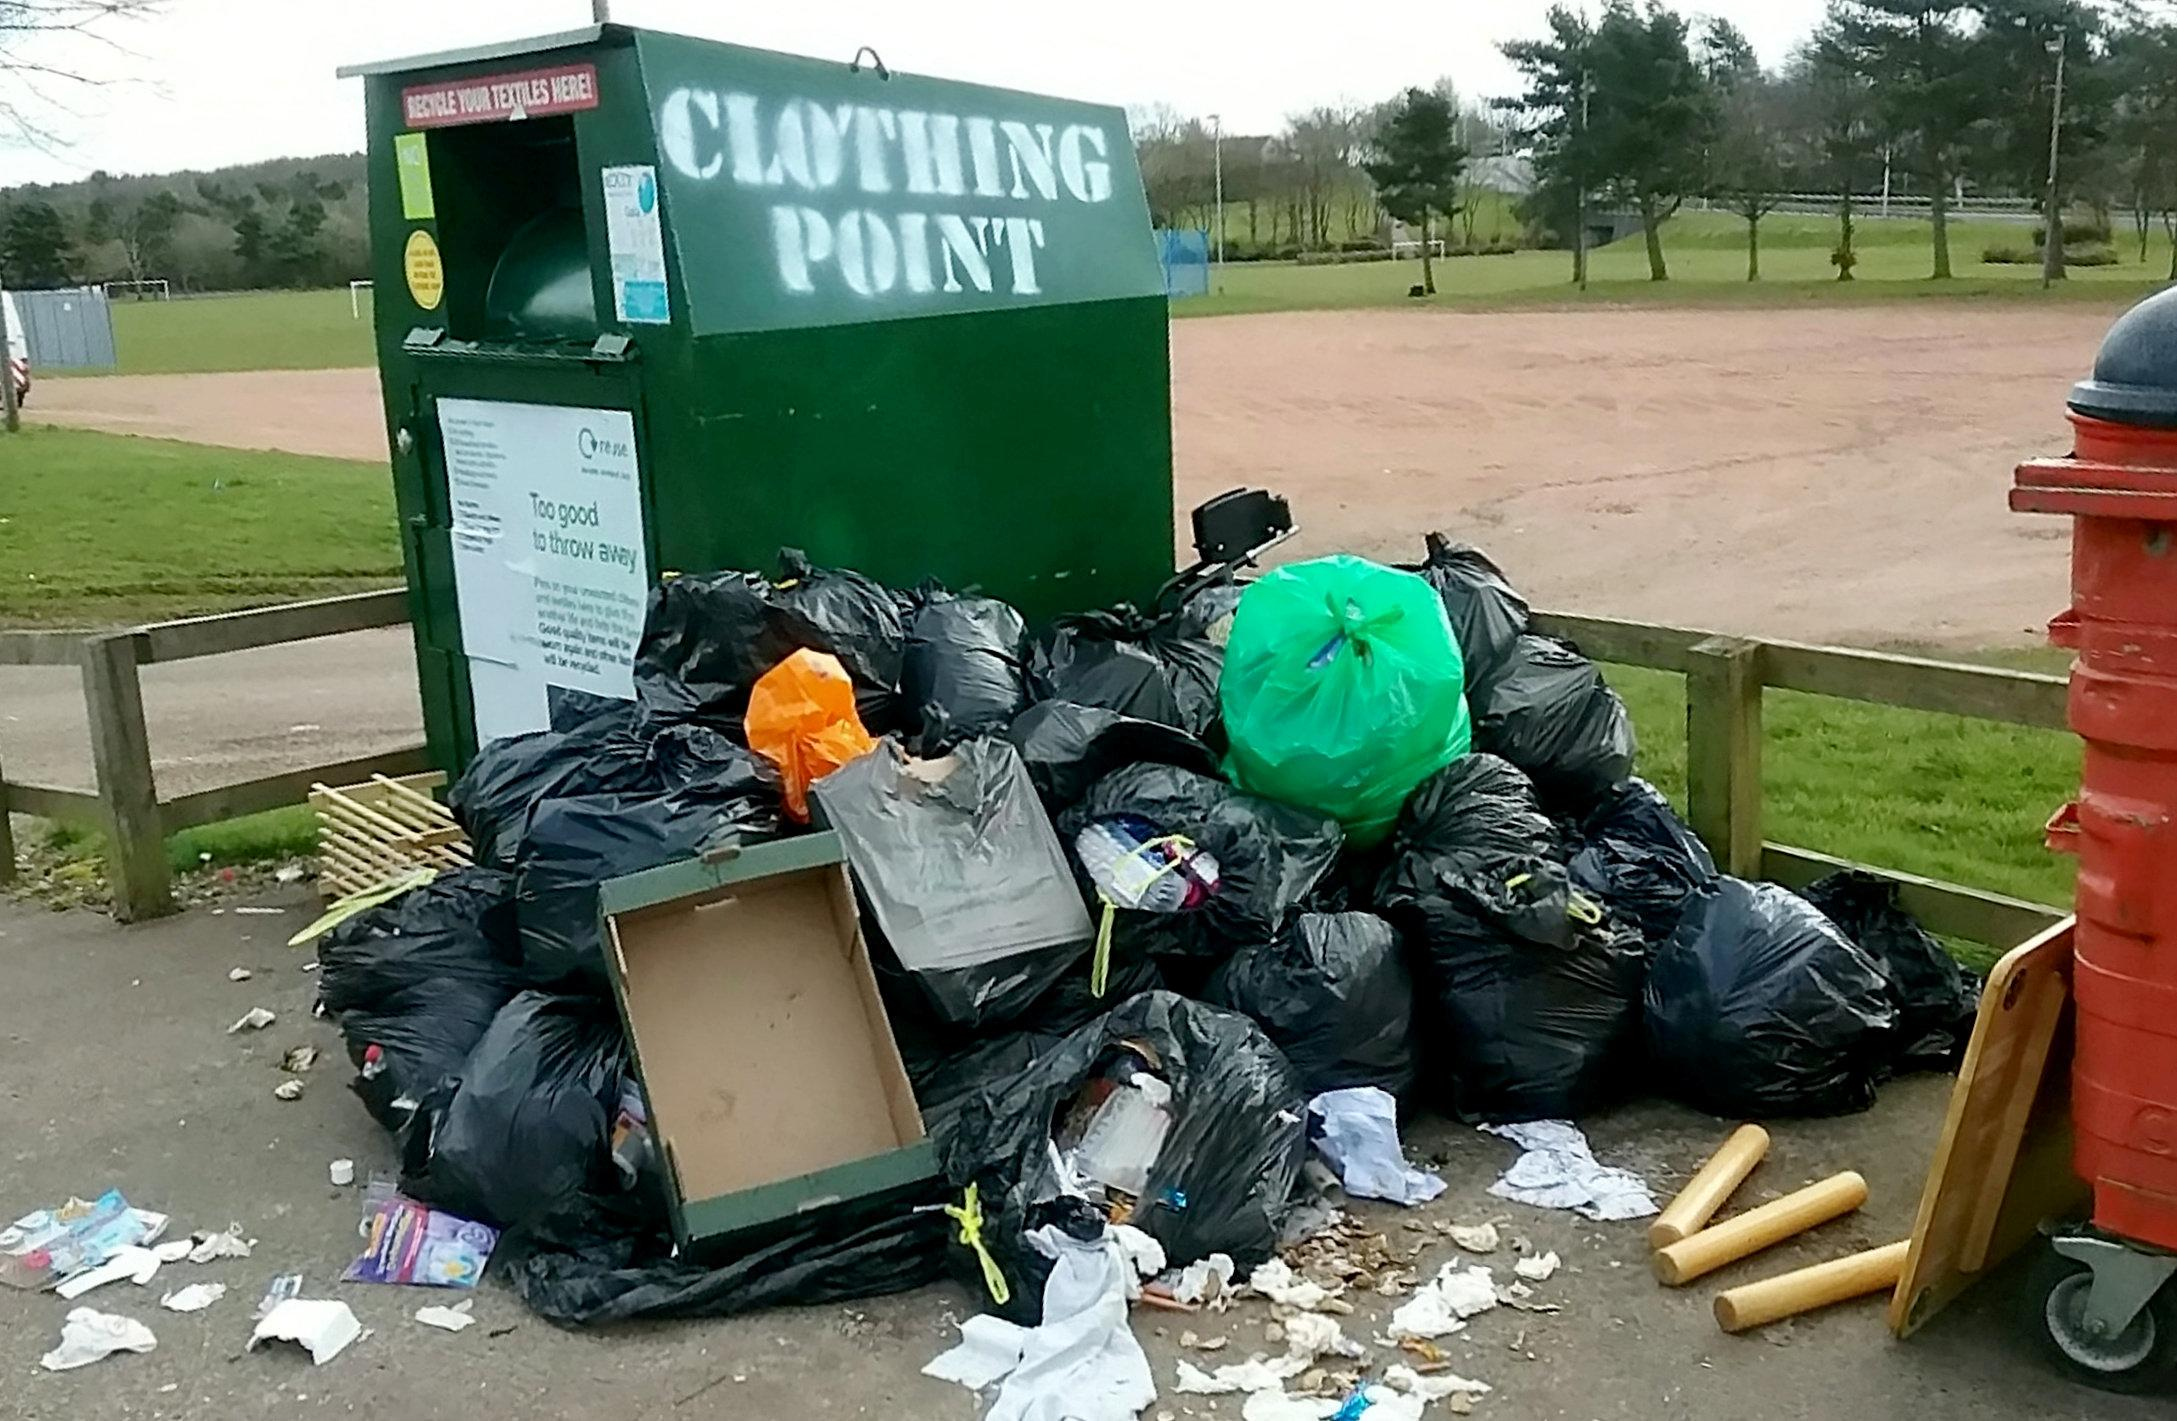 Coronavirus crisis sparks 300% surge in fly-tipping, councils warn